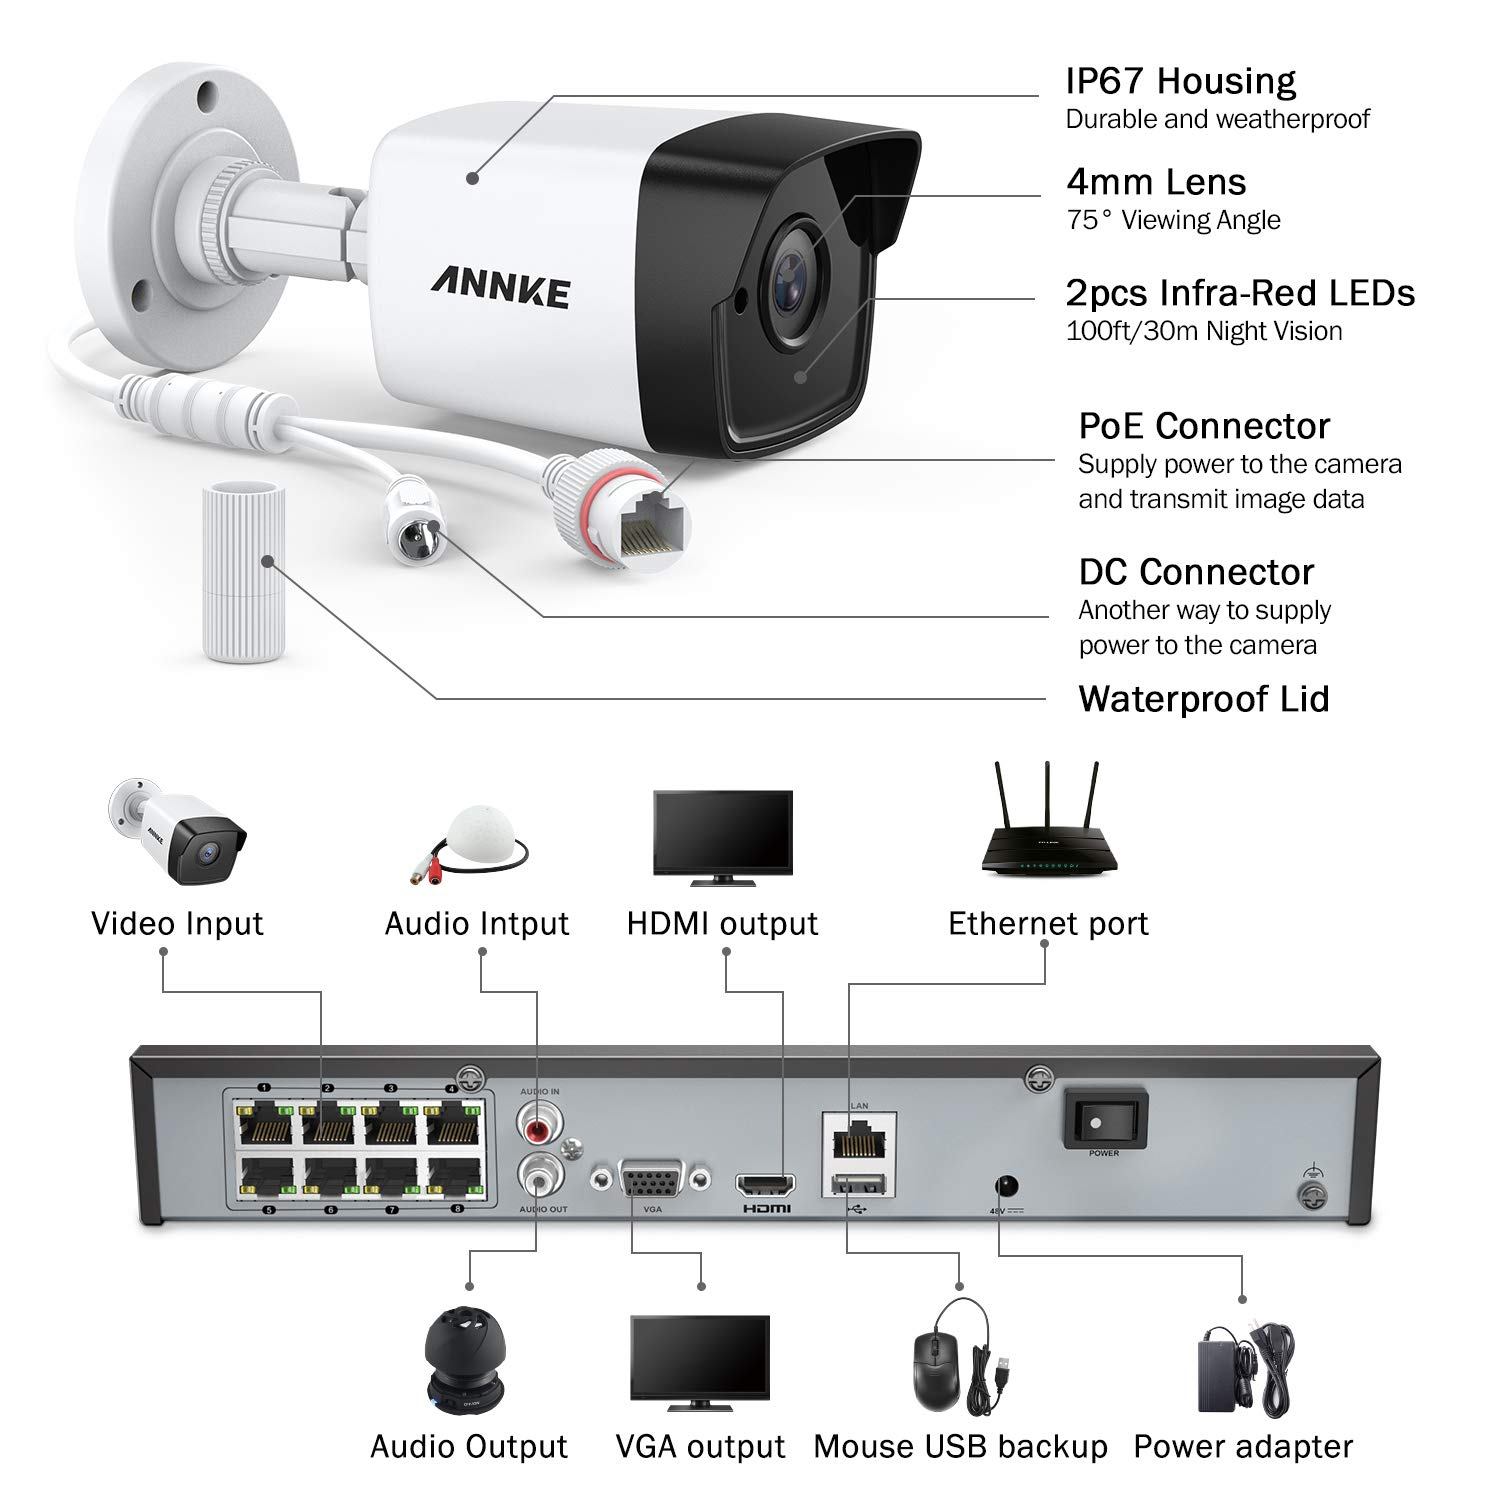 ANNKE 5MP Home Security Camera System H.265 8CH Ultra HD 4K PoE NVR w 4X Outdoor Bullet IP Cameras, 100ft Night Vision, 2TB HDD for 7 24 Recording, Support ONVIF Motion Detection